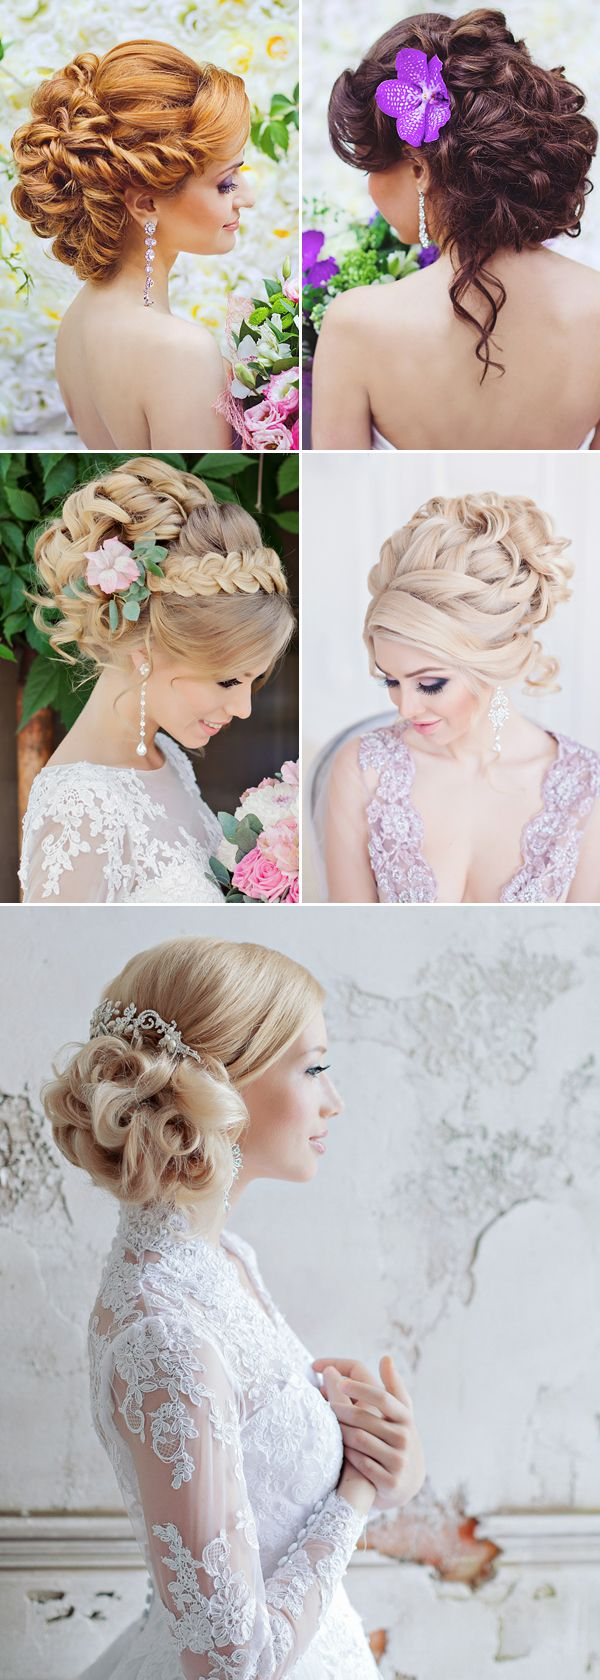 60 best wedding hair styles images on Pinterest | Hair cut, Long ...